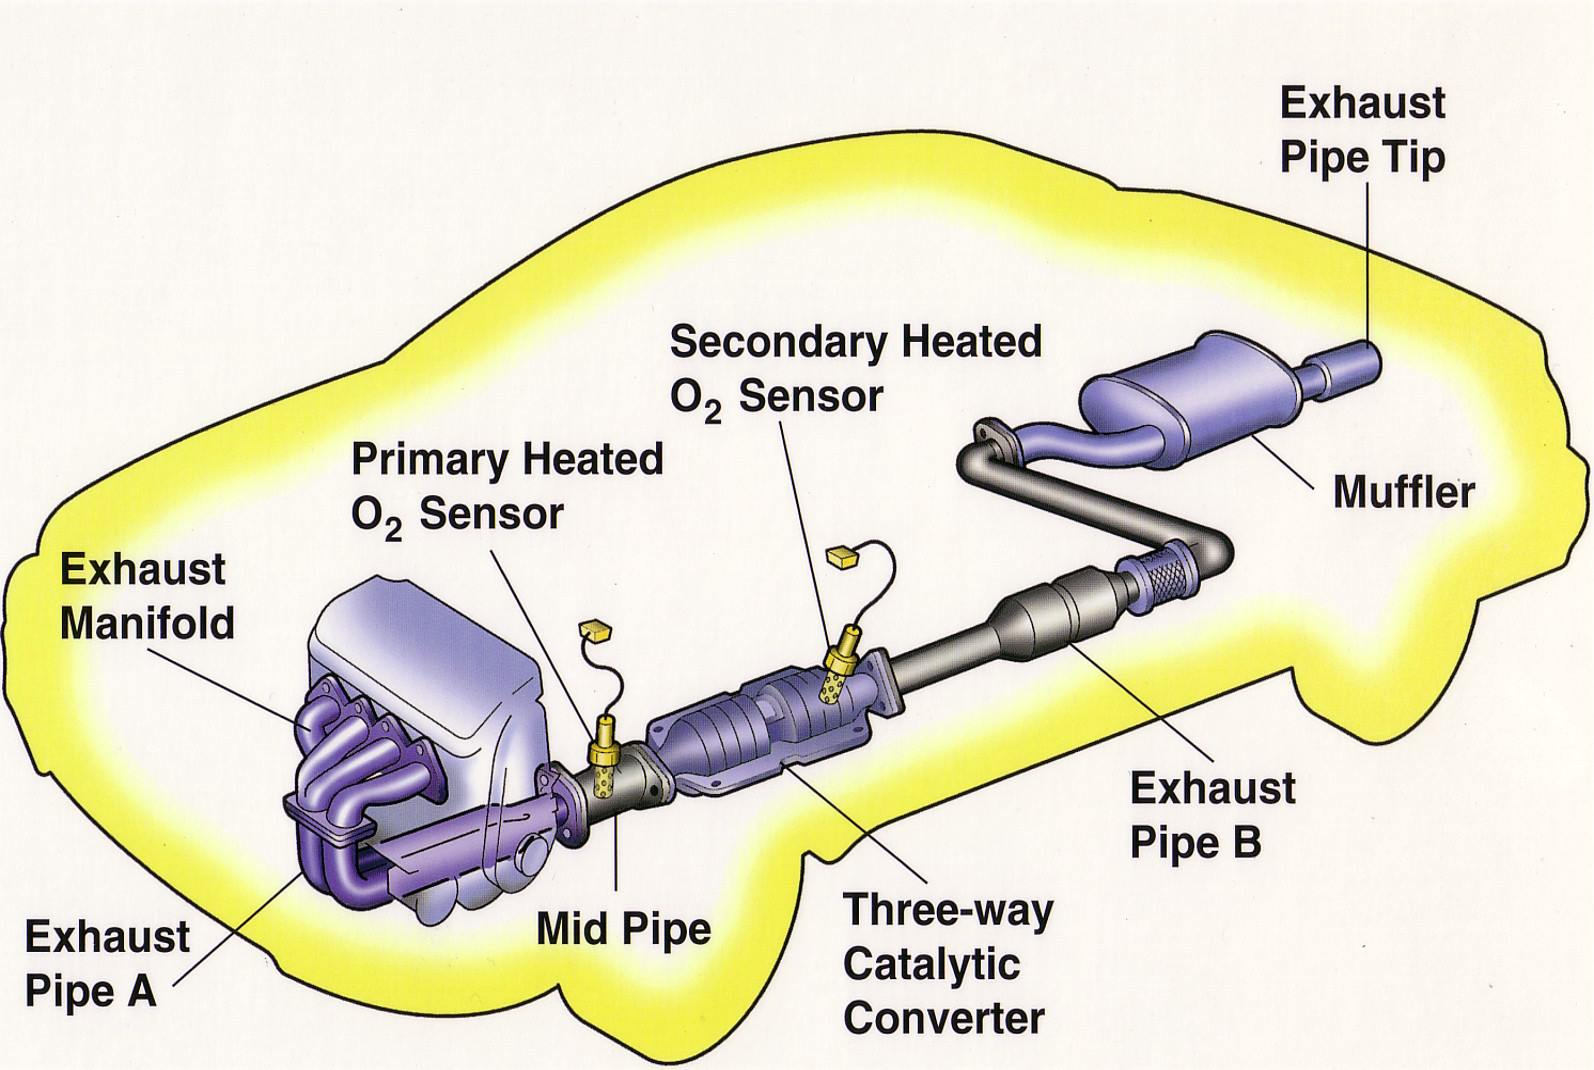 exhaust system diagram rh browardcountymufflers com diagram of exhaust system 2003 navigator diagram of exhaust system on 1978 vette